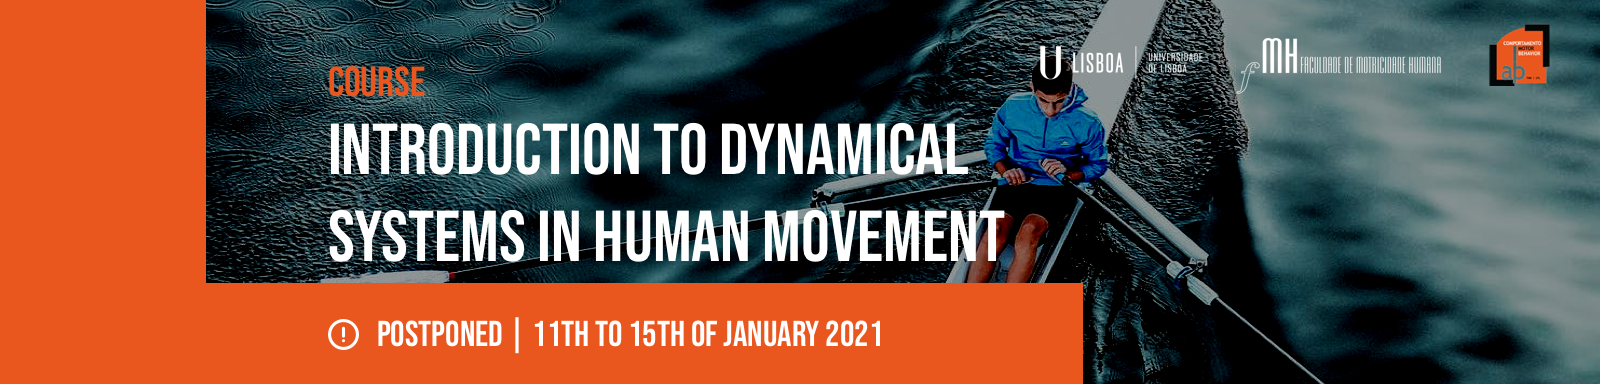 Introduction to dynamical systems in human movement